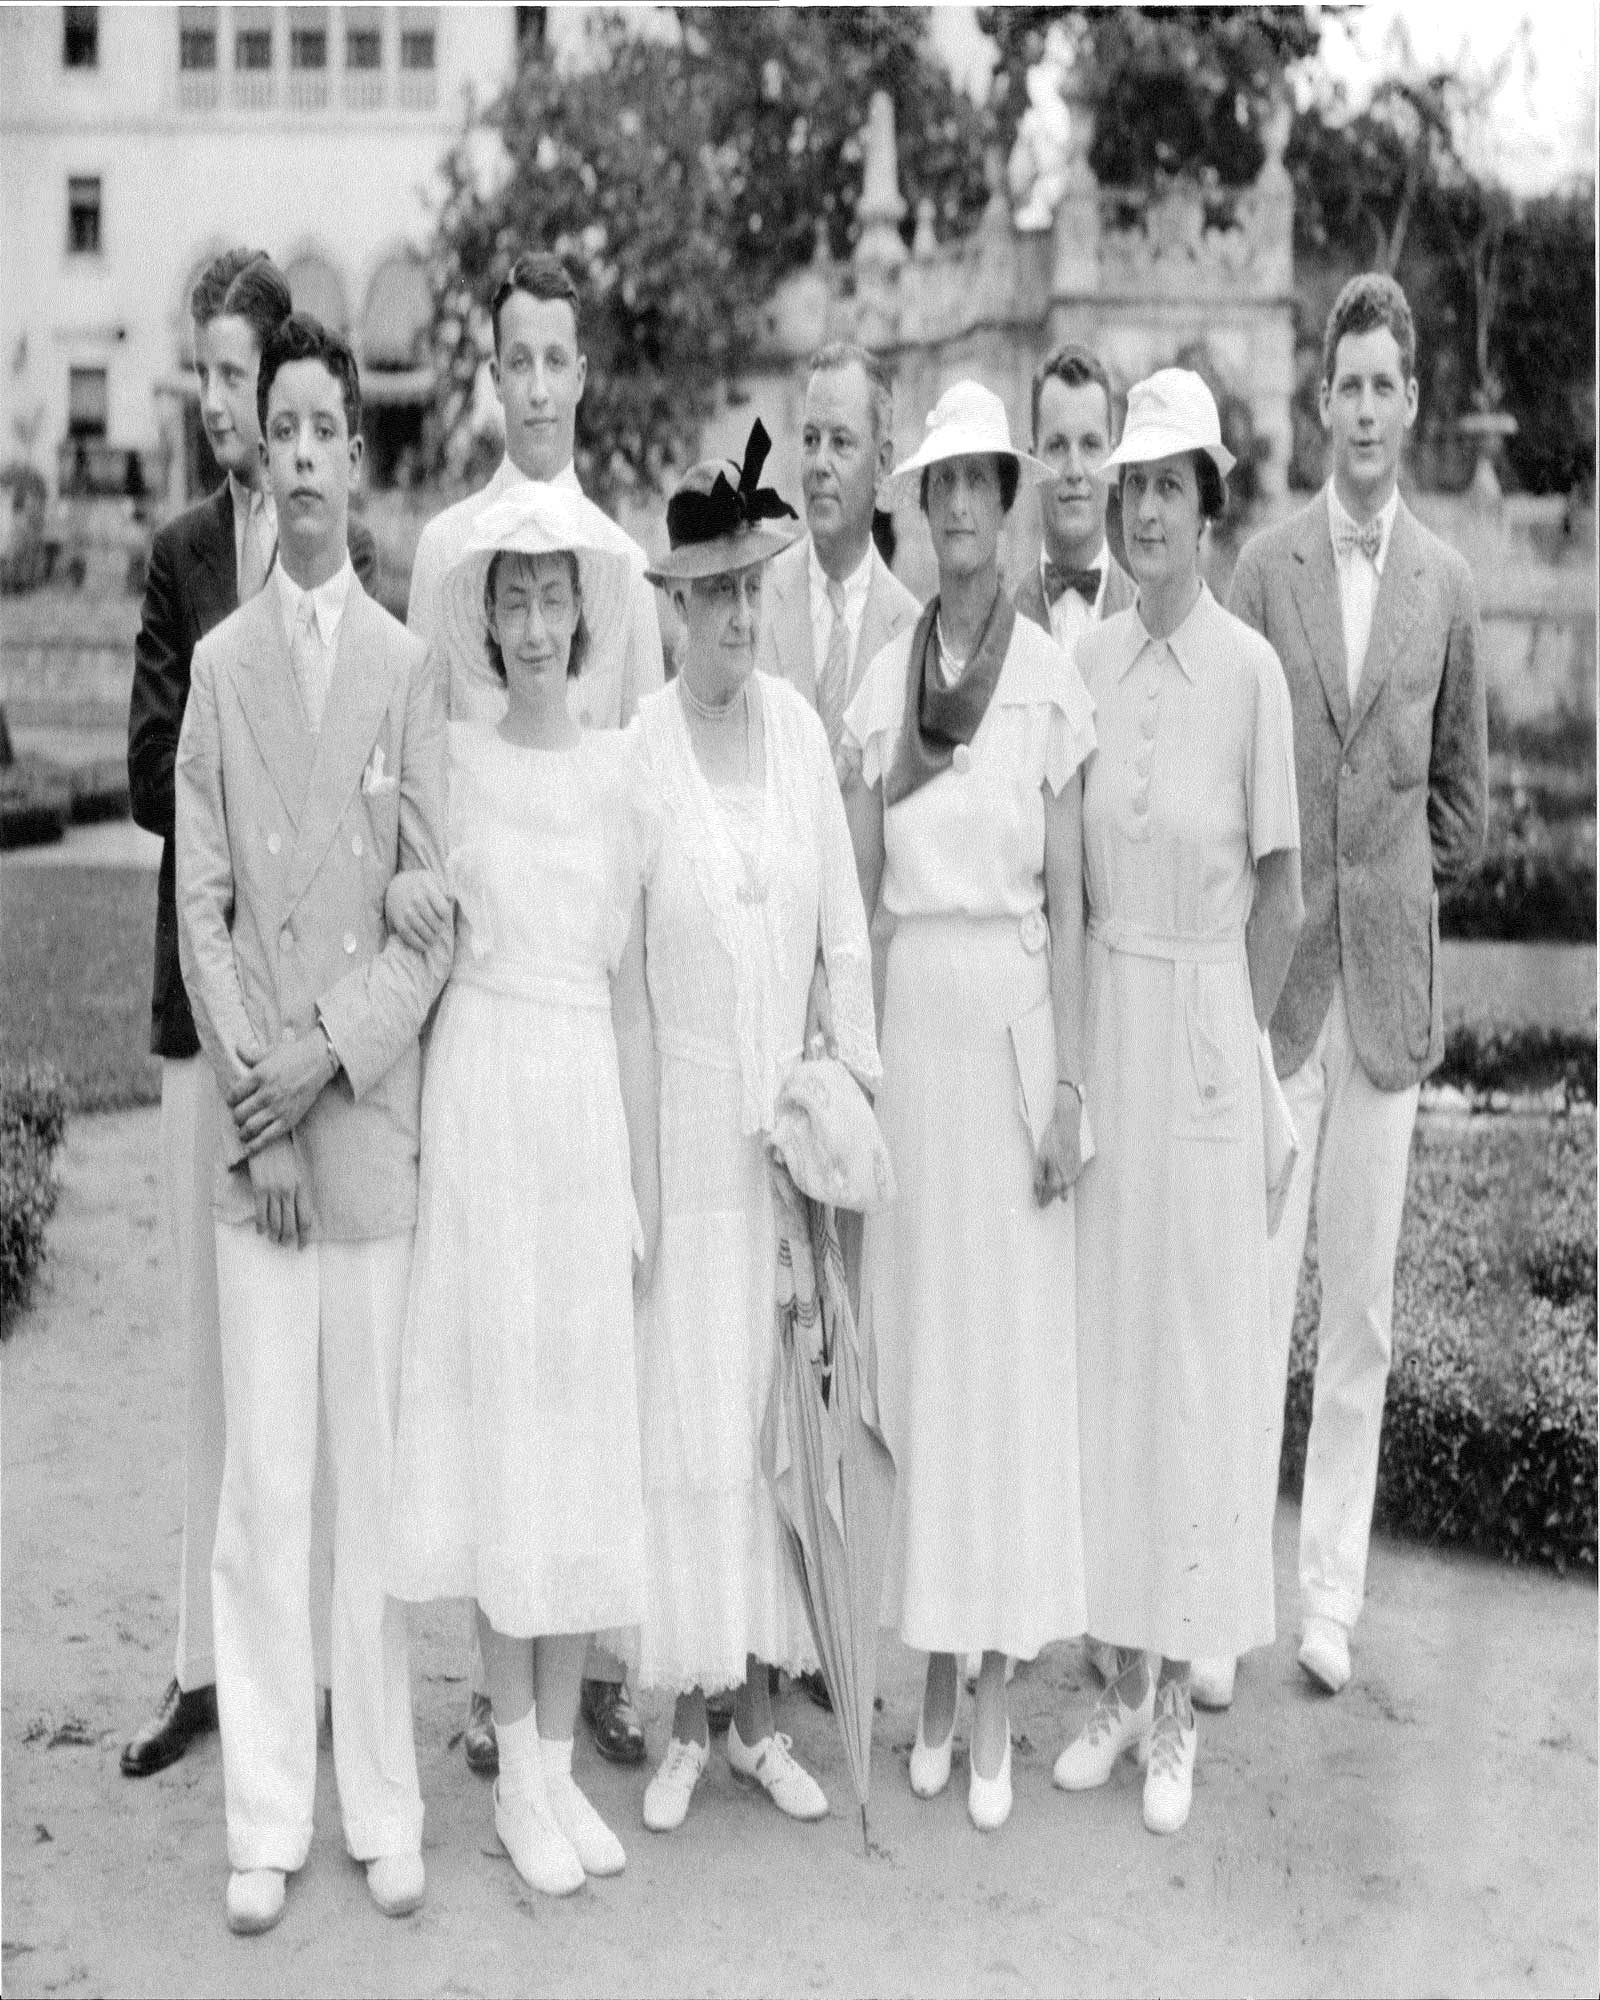 Deering family members at Villa Vizcaya, winter home of James Deering (Charles' younger half-brother) ca. 1930s